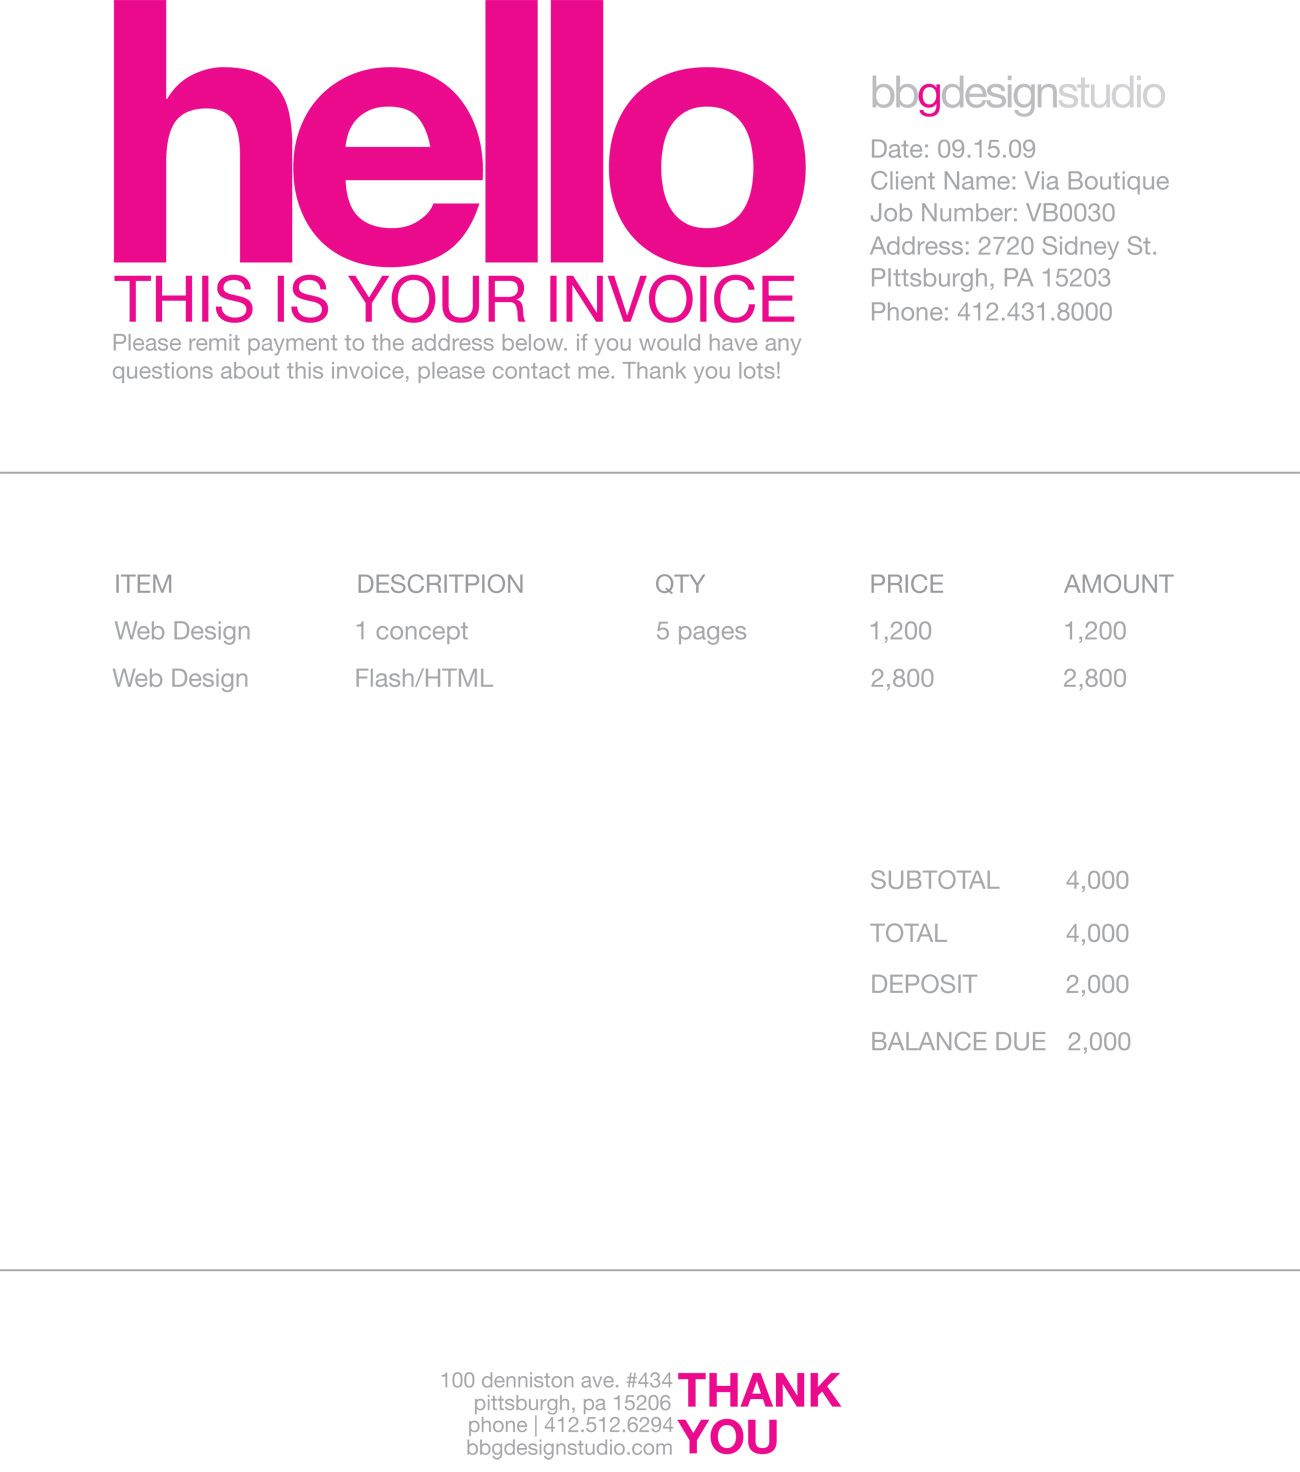 Gpwaus  Pleasing  Images About Invoice Design On Pinterest With Glamorous Invoice To Besides Freelance Graphic Design Invoice Furthermore Past Due Invoice Template With Appealing Freelance Design Invoice Also Audi Invoice Price In Addition Best Invoice Software For Small Business And Microsoft Word Invoice Template Free Download As Well As How To Fill Out Invoice Additionally Invoice Program For Mac From Pinterestcom With Gpwaus  Glamorous  Images About Invoice Design On Pinterest With Appealing Invoice To Besides Freelance Graphic Design Invoice Furthermore Past Due Invoice Template And Pleasing Freelance Design Invoice Also Audi Invoice Price In Addition Best Invoice Software For Small Business From Pinterestcom